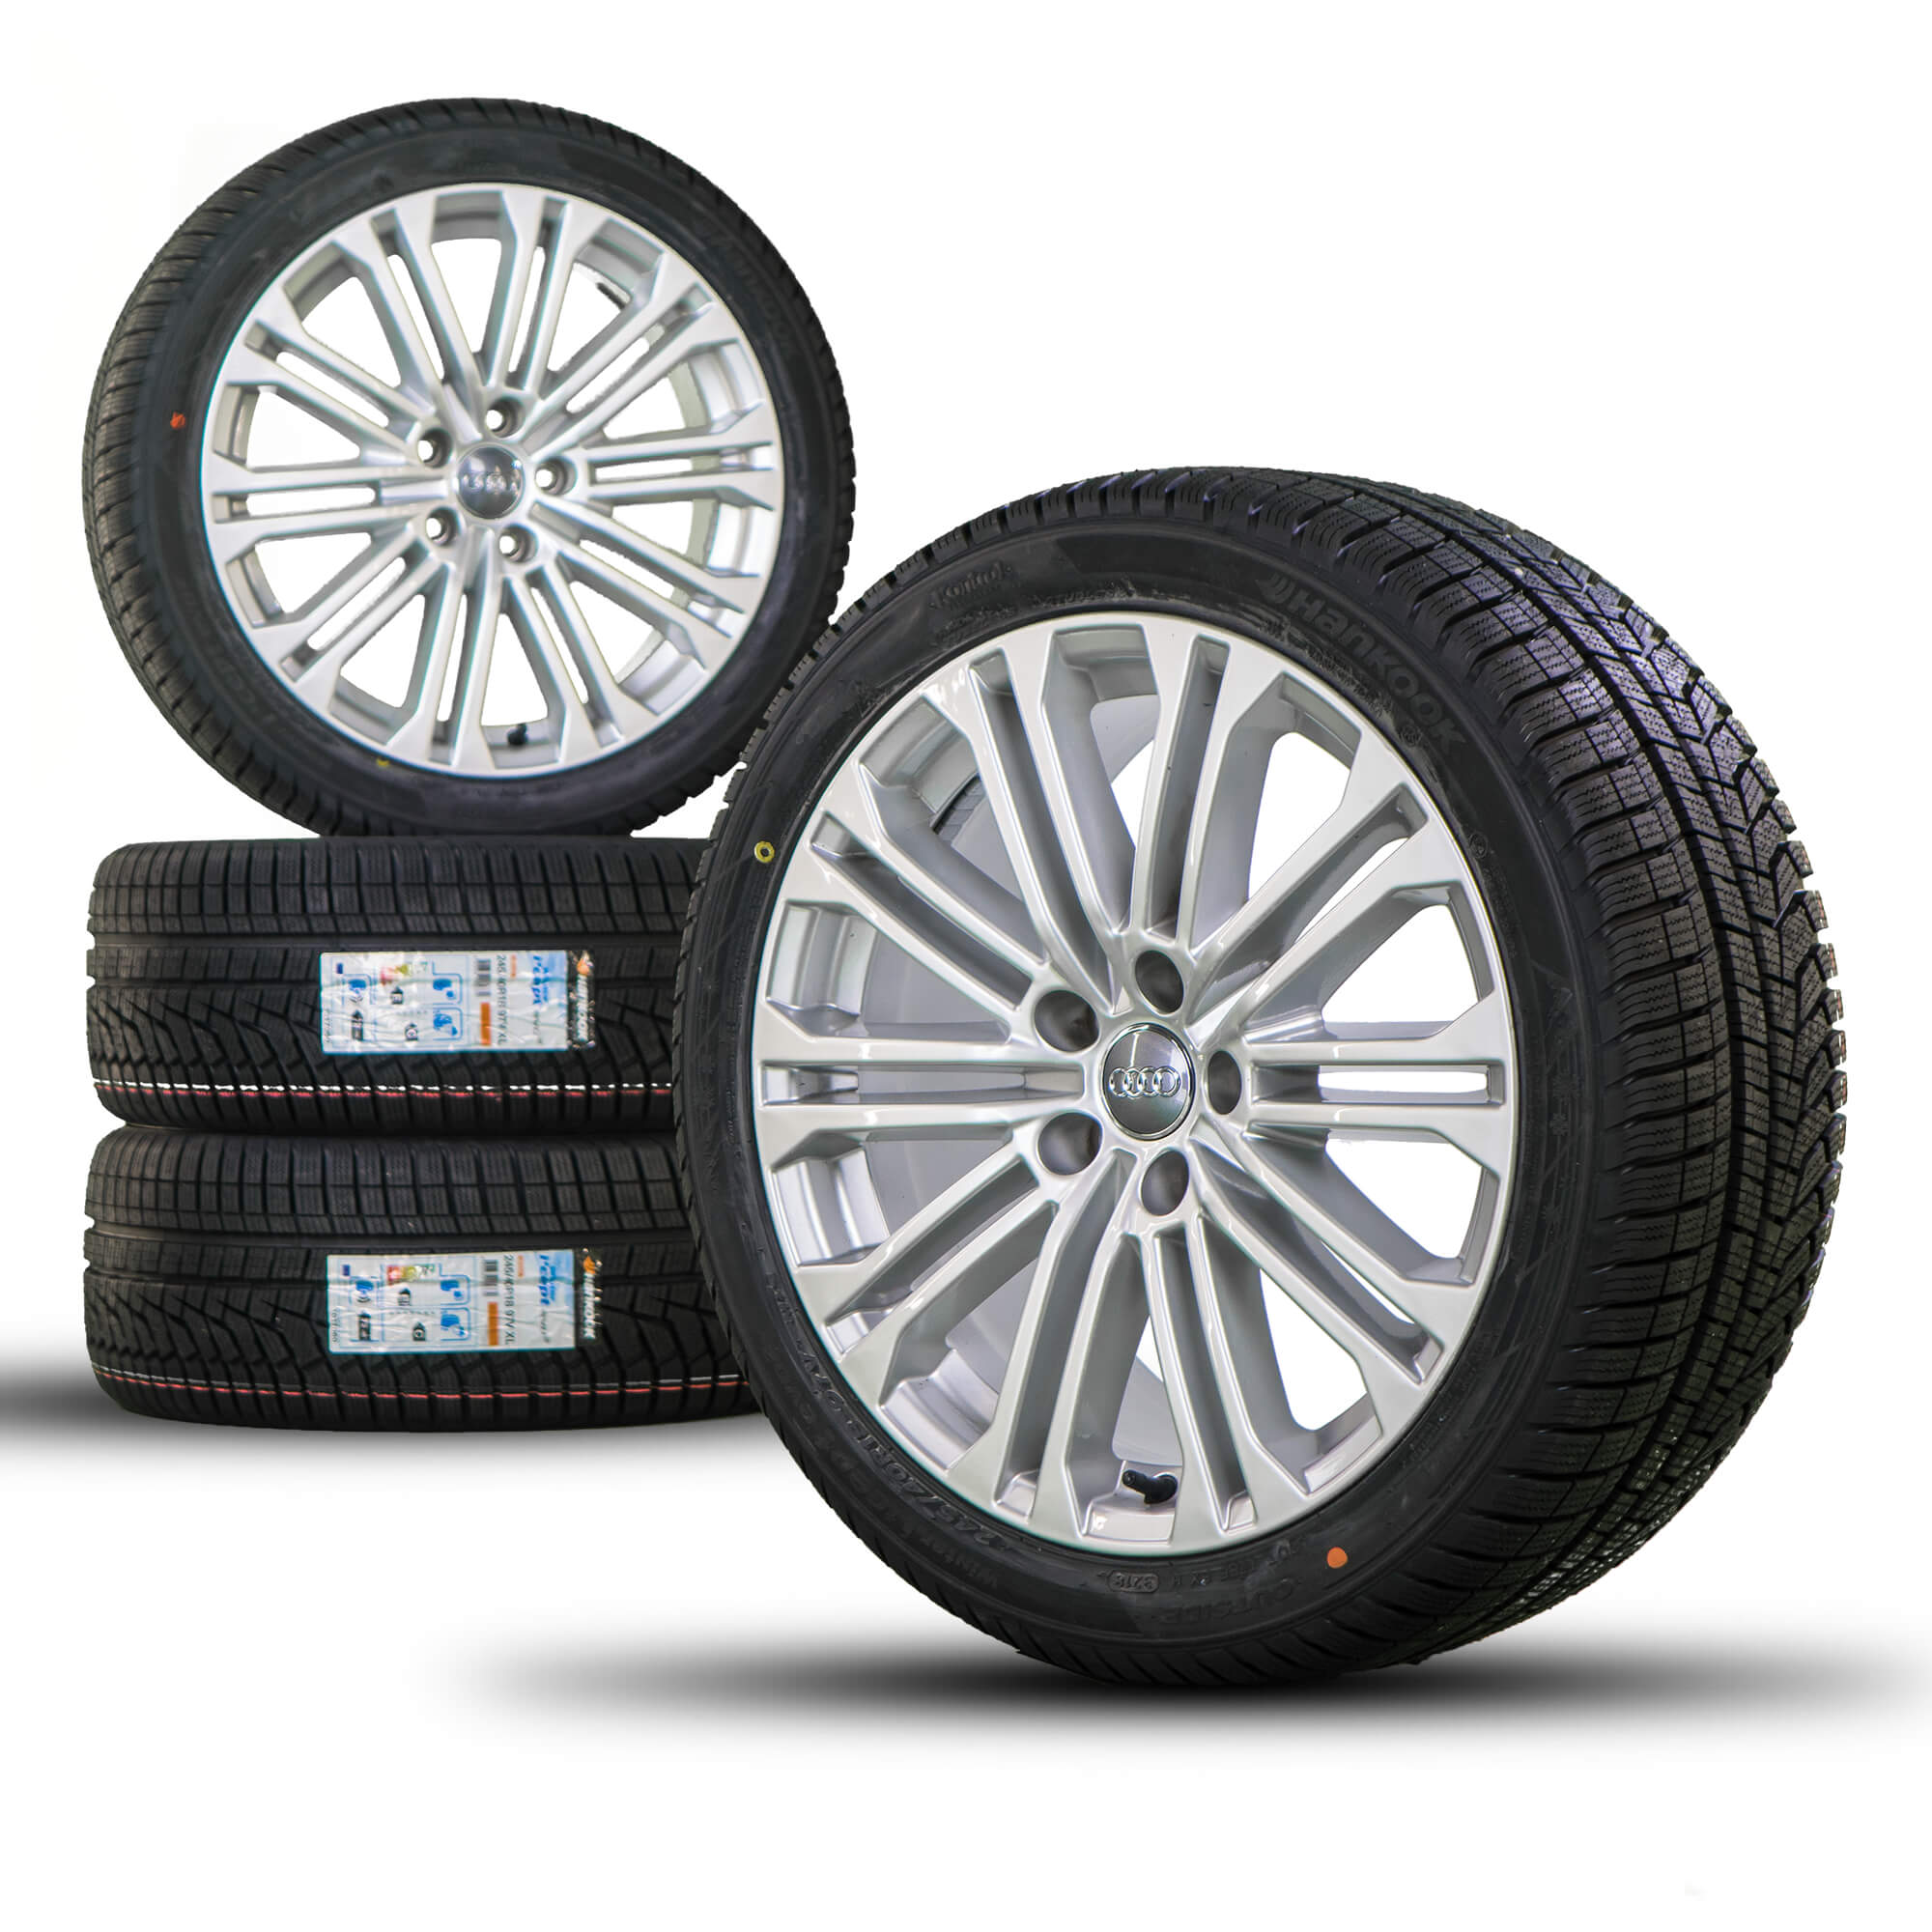 18 Inch Rims And Tires >> Details About Audi 18 Inch Rims A5 S5 8w Aluminum Rims Winter Tires New Winter Wheels